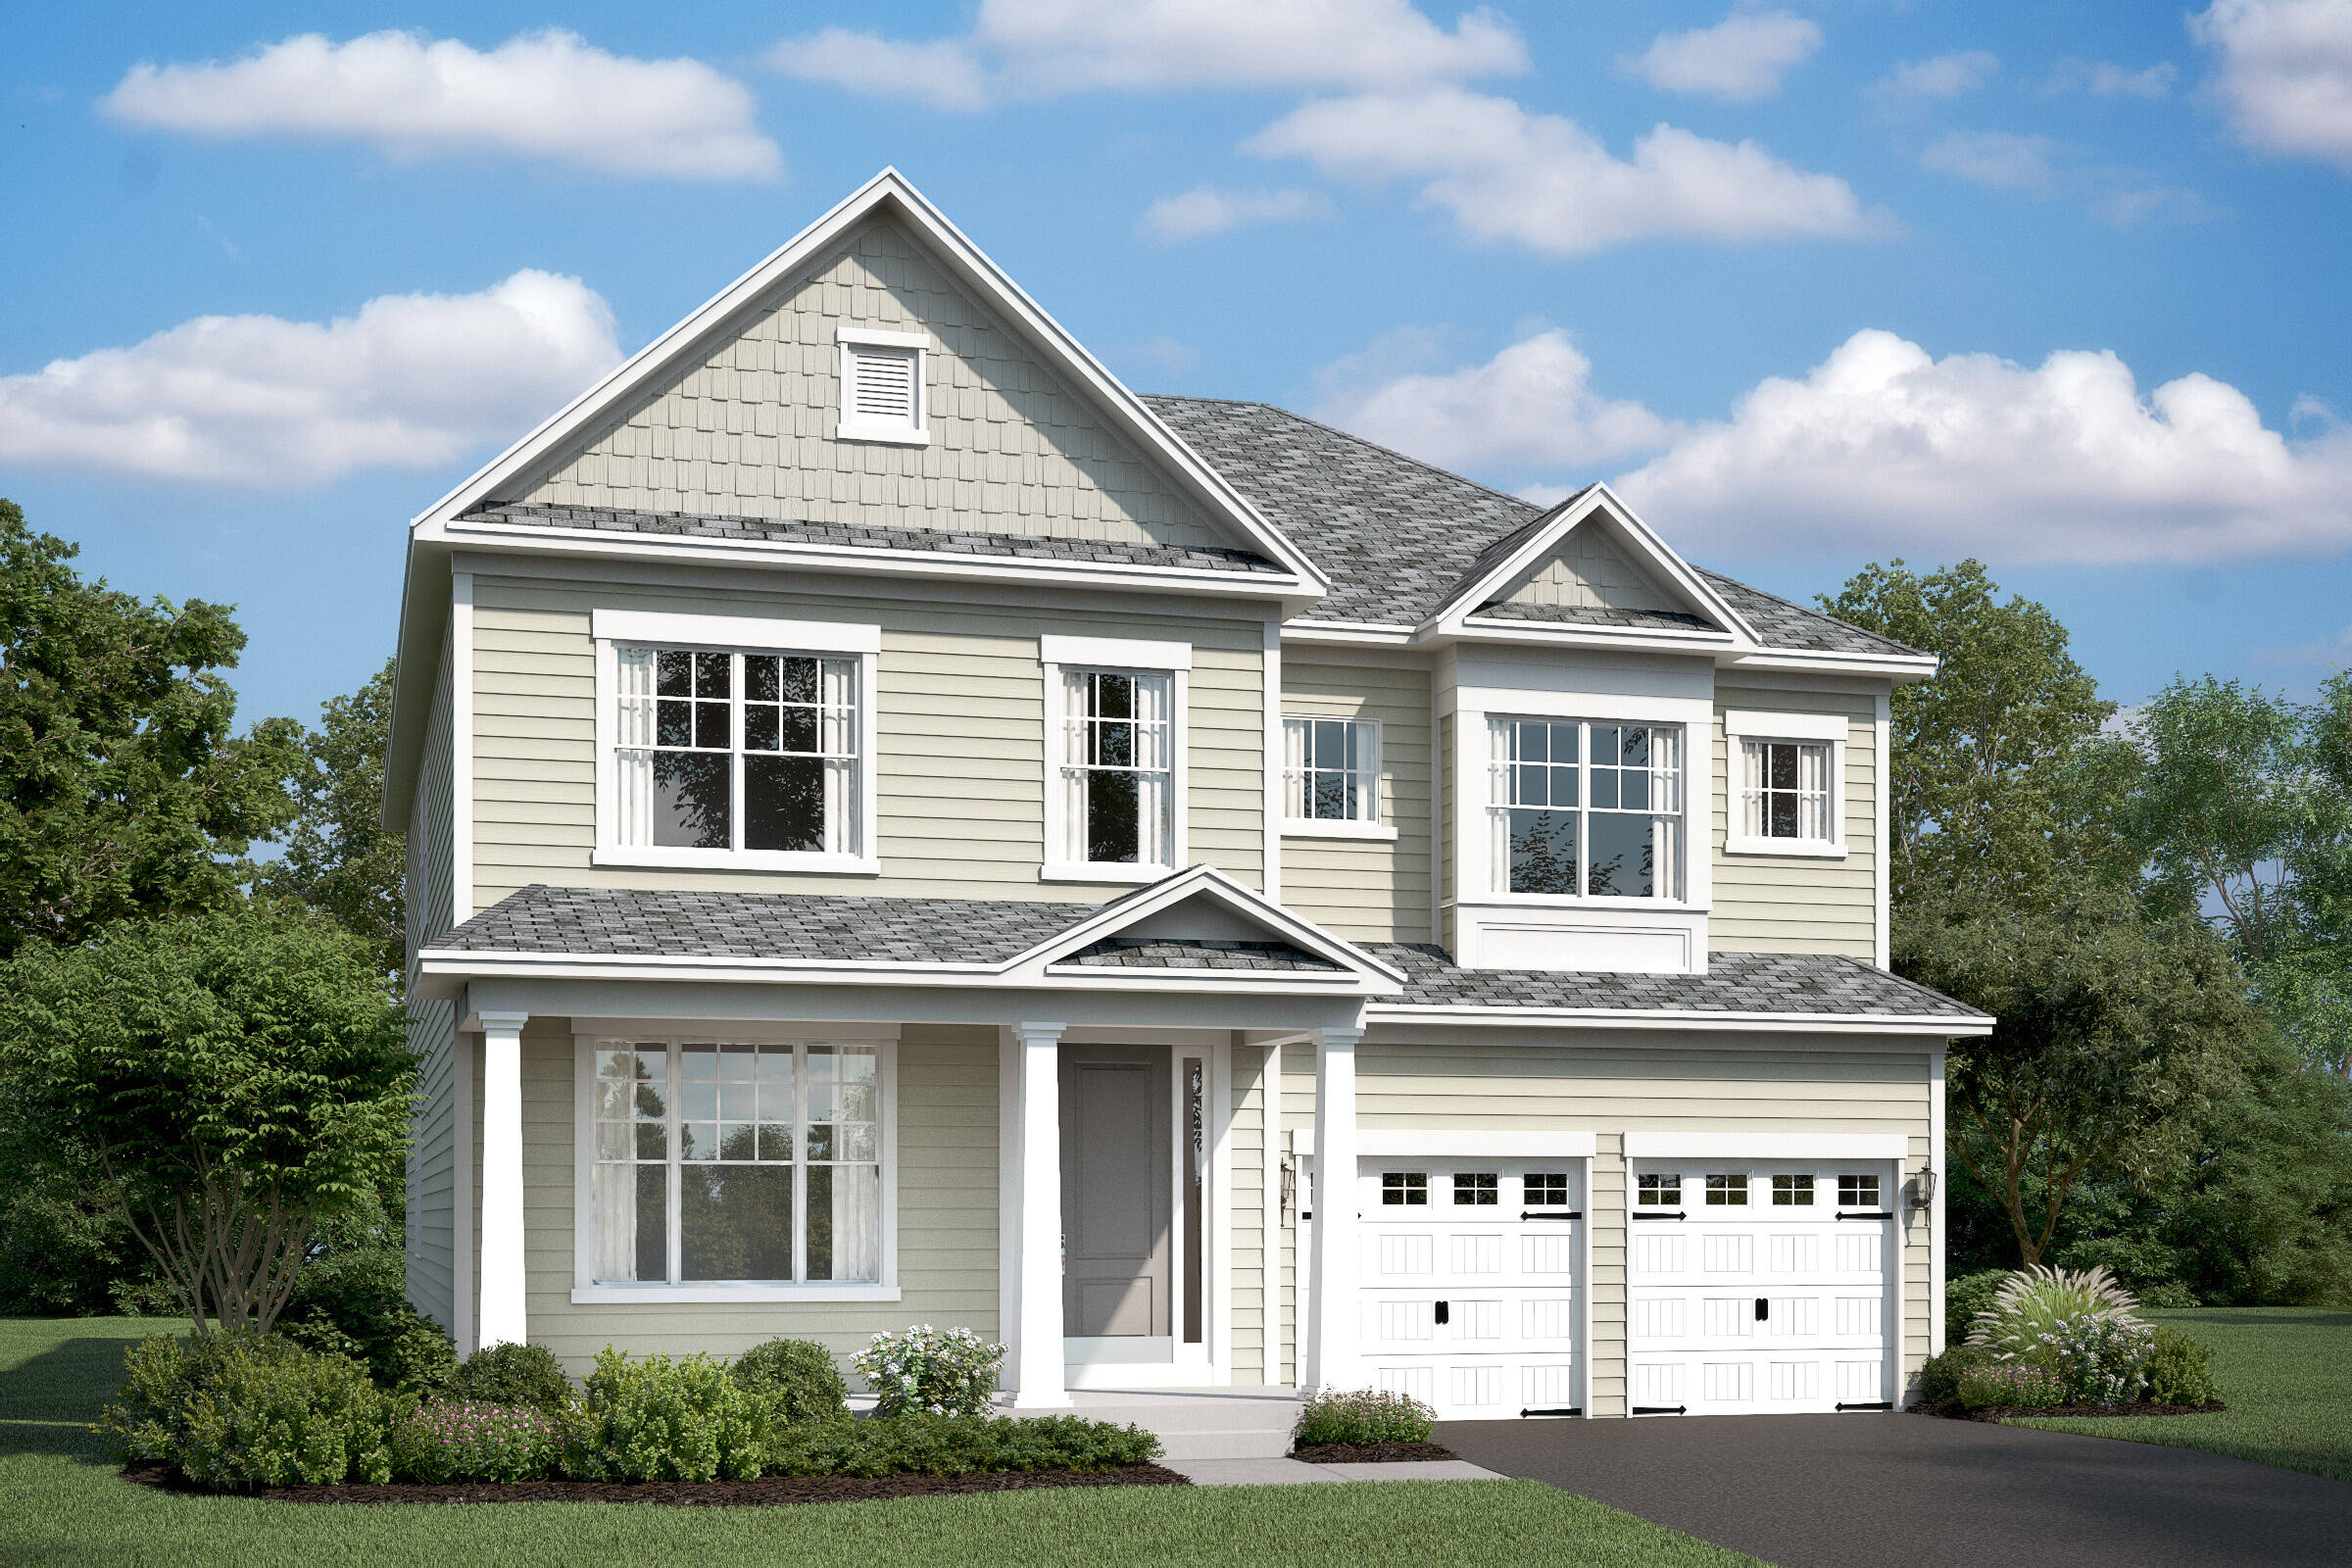 callahan II d new homes at stone mill in maryland